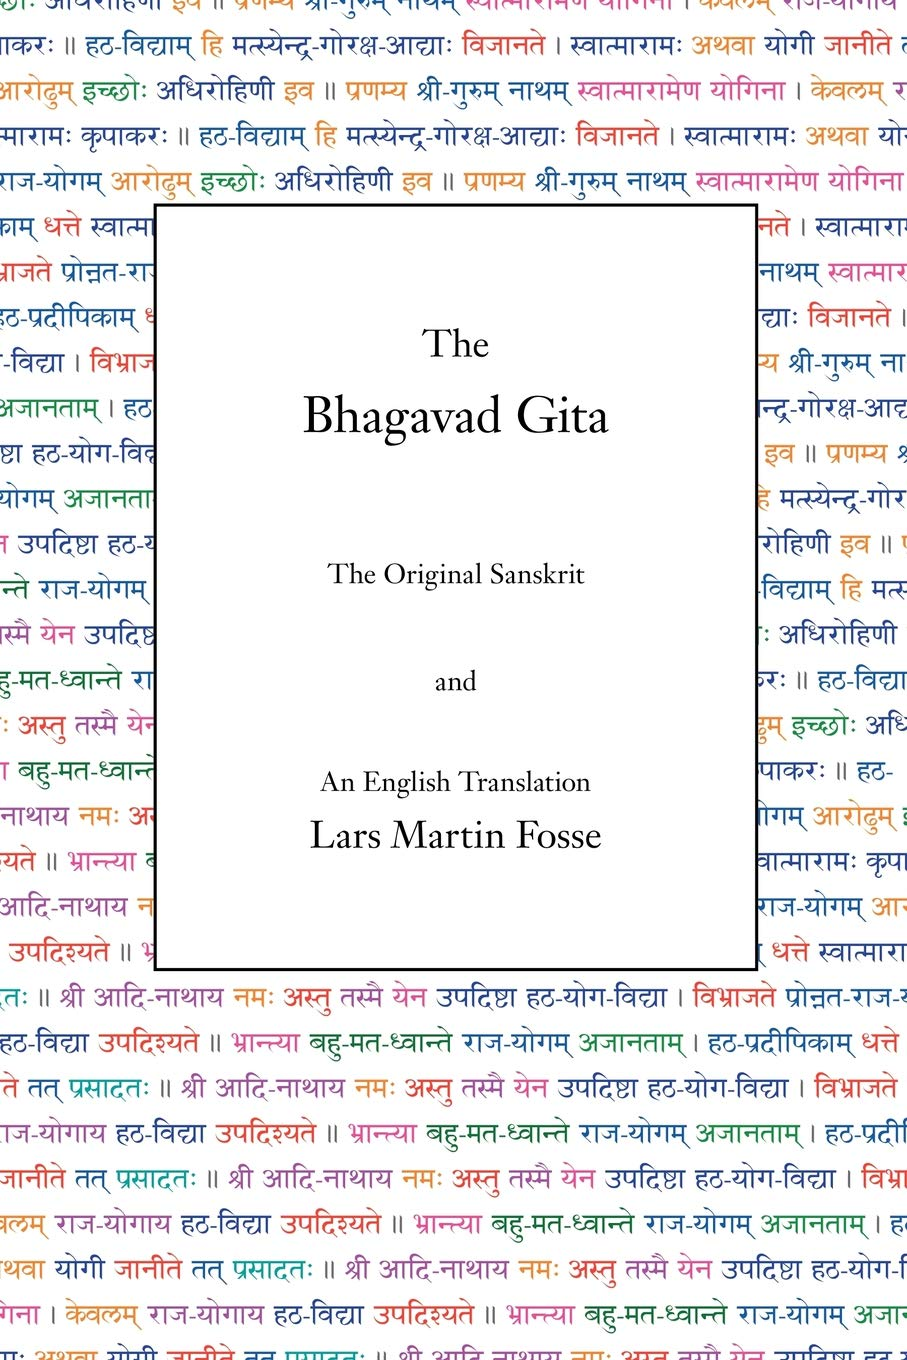 The Bhagavad Gita: Amazon co uk: Lars Martin Fosse: 8601410082765: Books